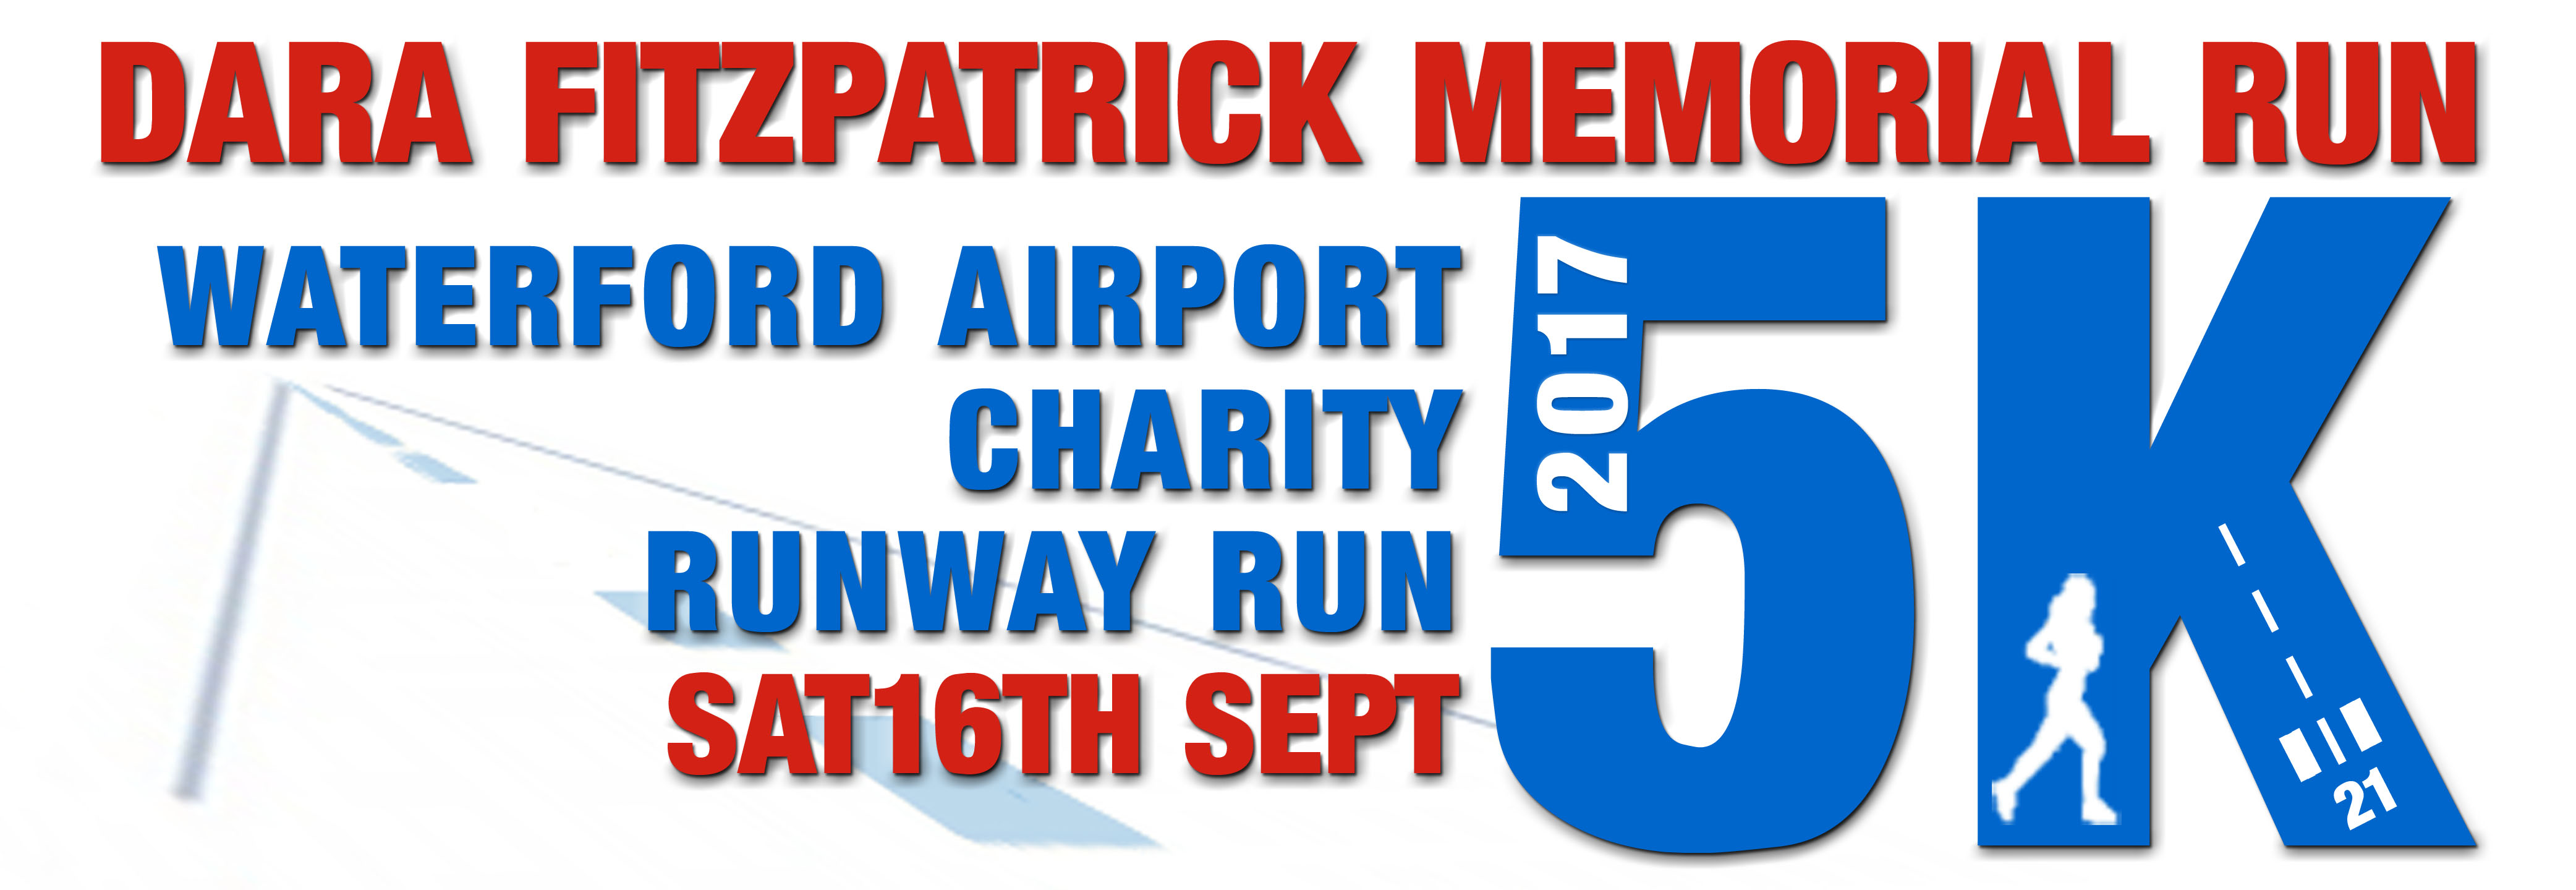 Dara Fitzpatrick Memorial Run logo